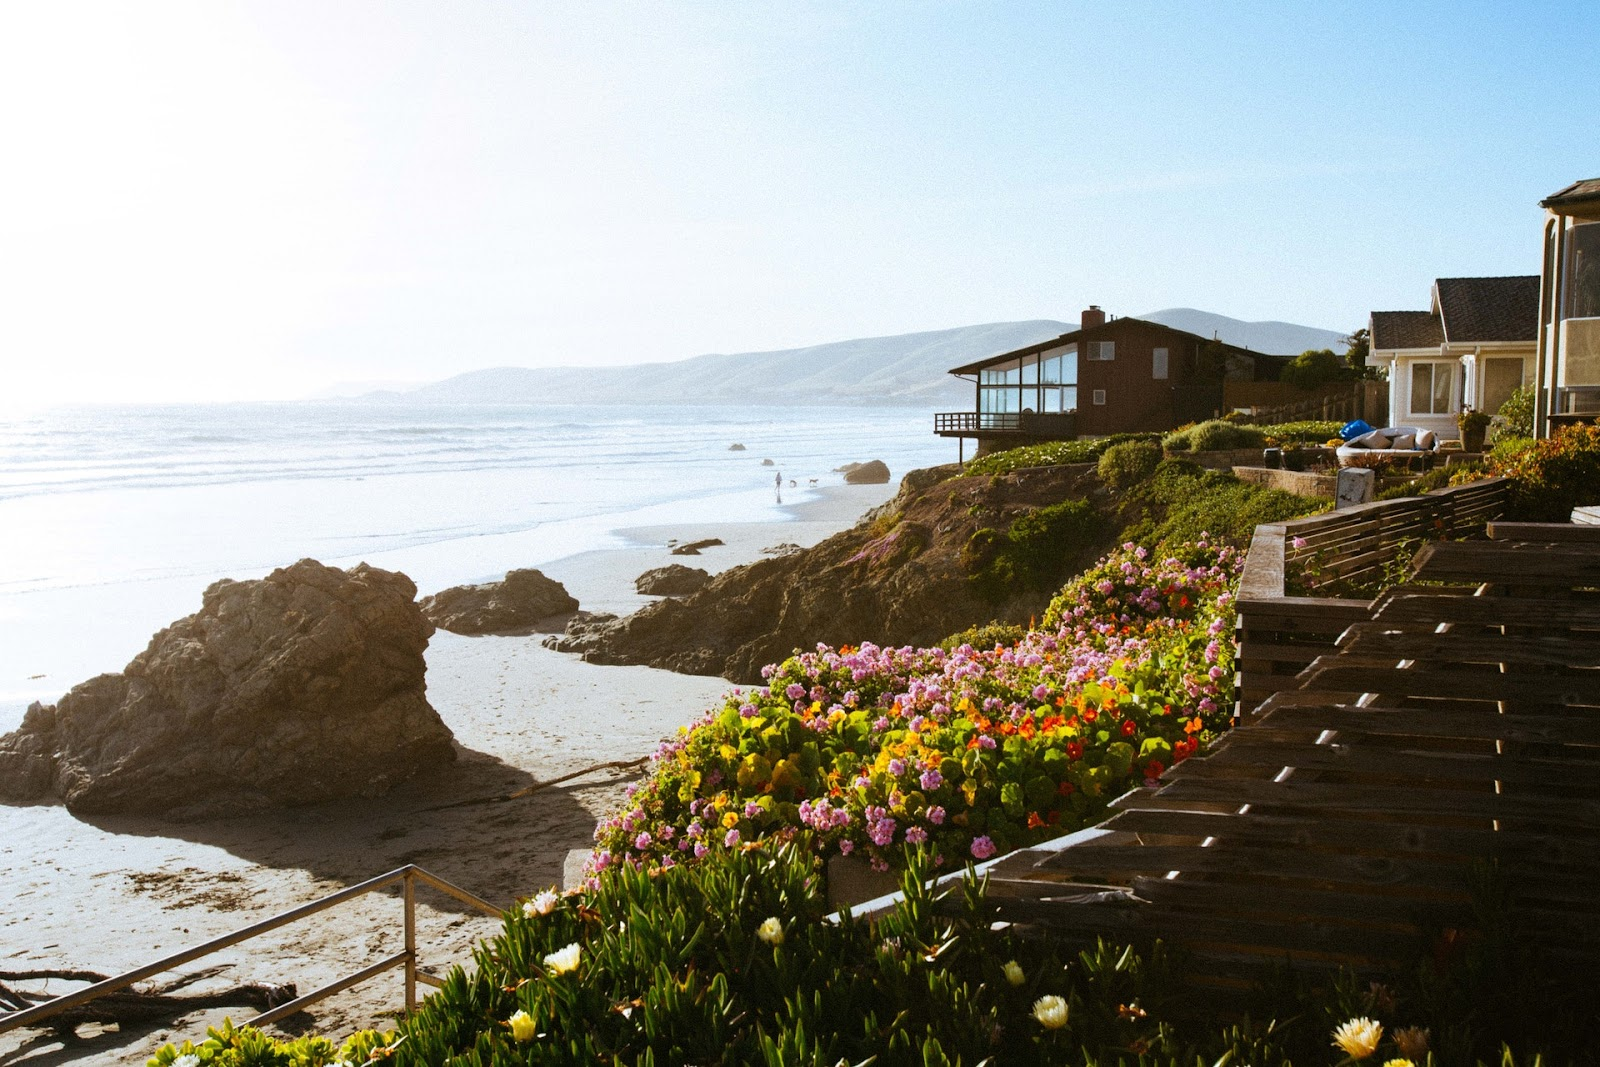 What You Should Consider When Buying a House by the Beach